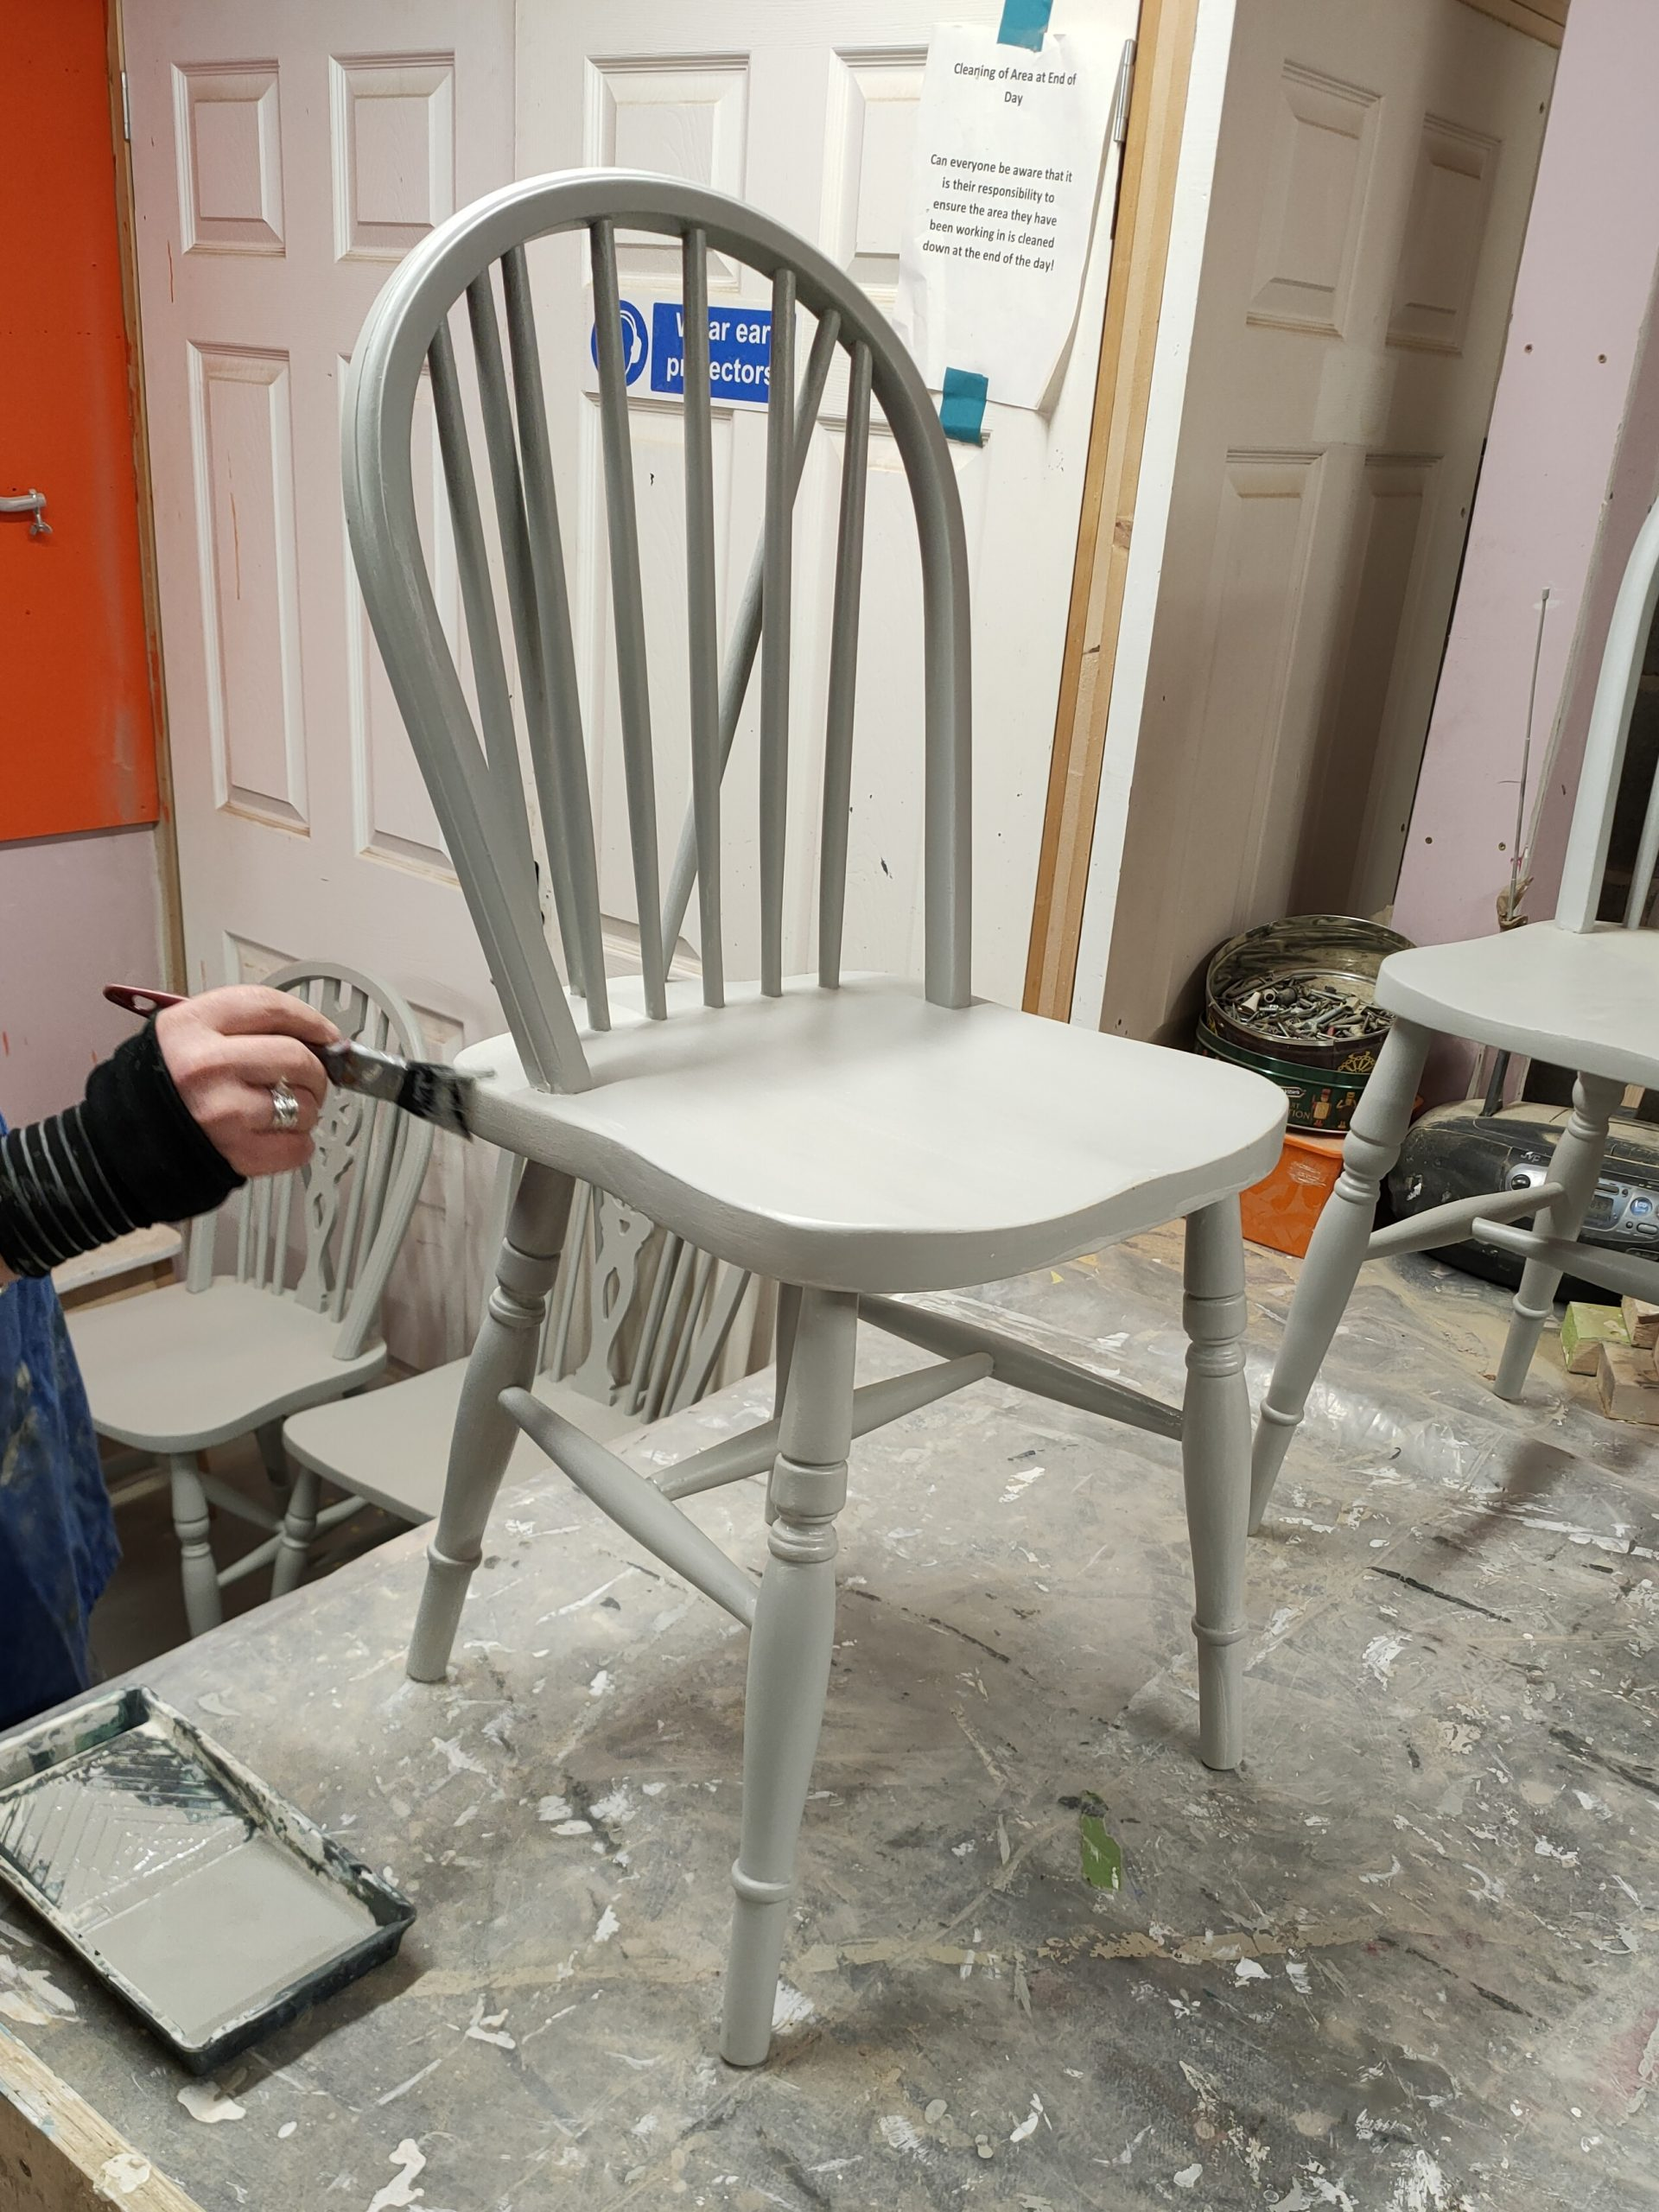 Furniture upcycling with affordable, reusable paint at Community RePaint Loughborough